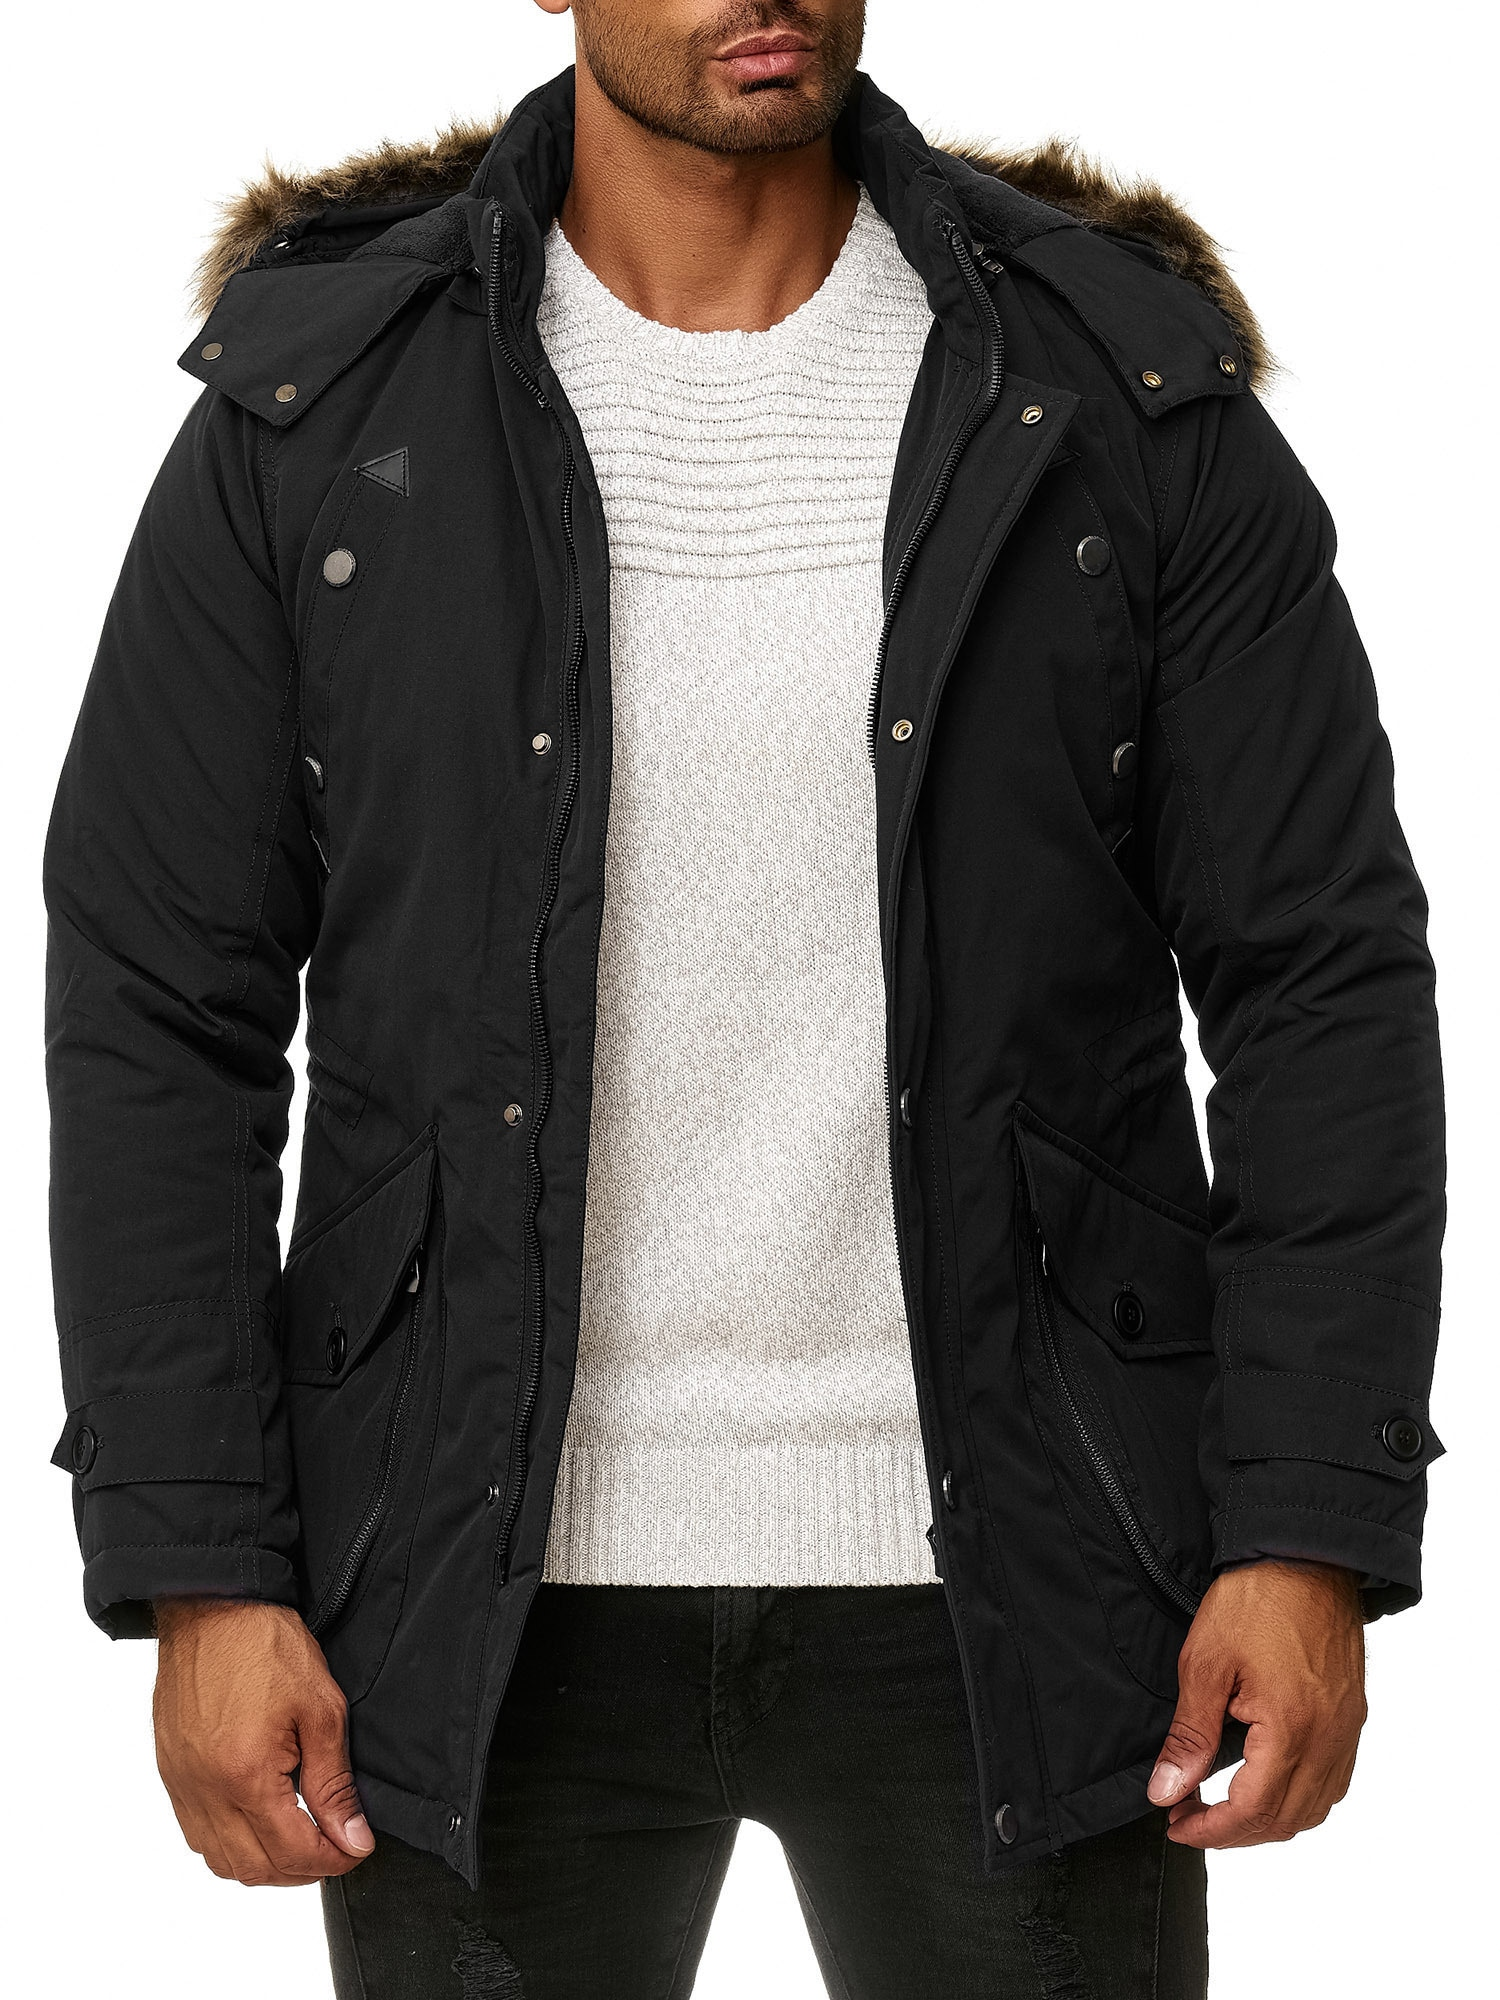 BLACKROCK Outdoorjacke | Sportbekleidung > Sportjacken > Outdoorjacken | Schwarz | Blackrock